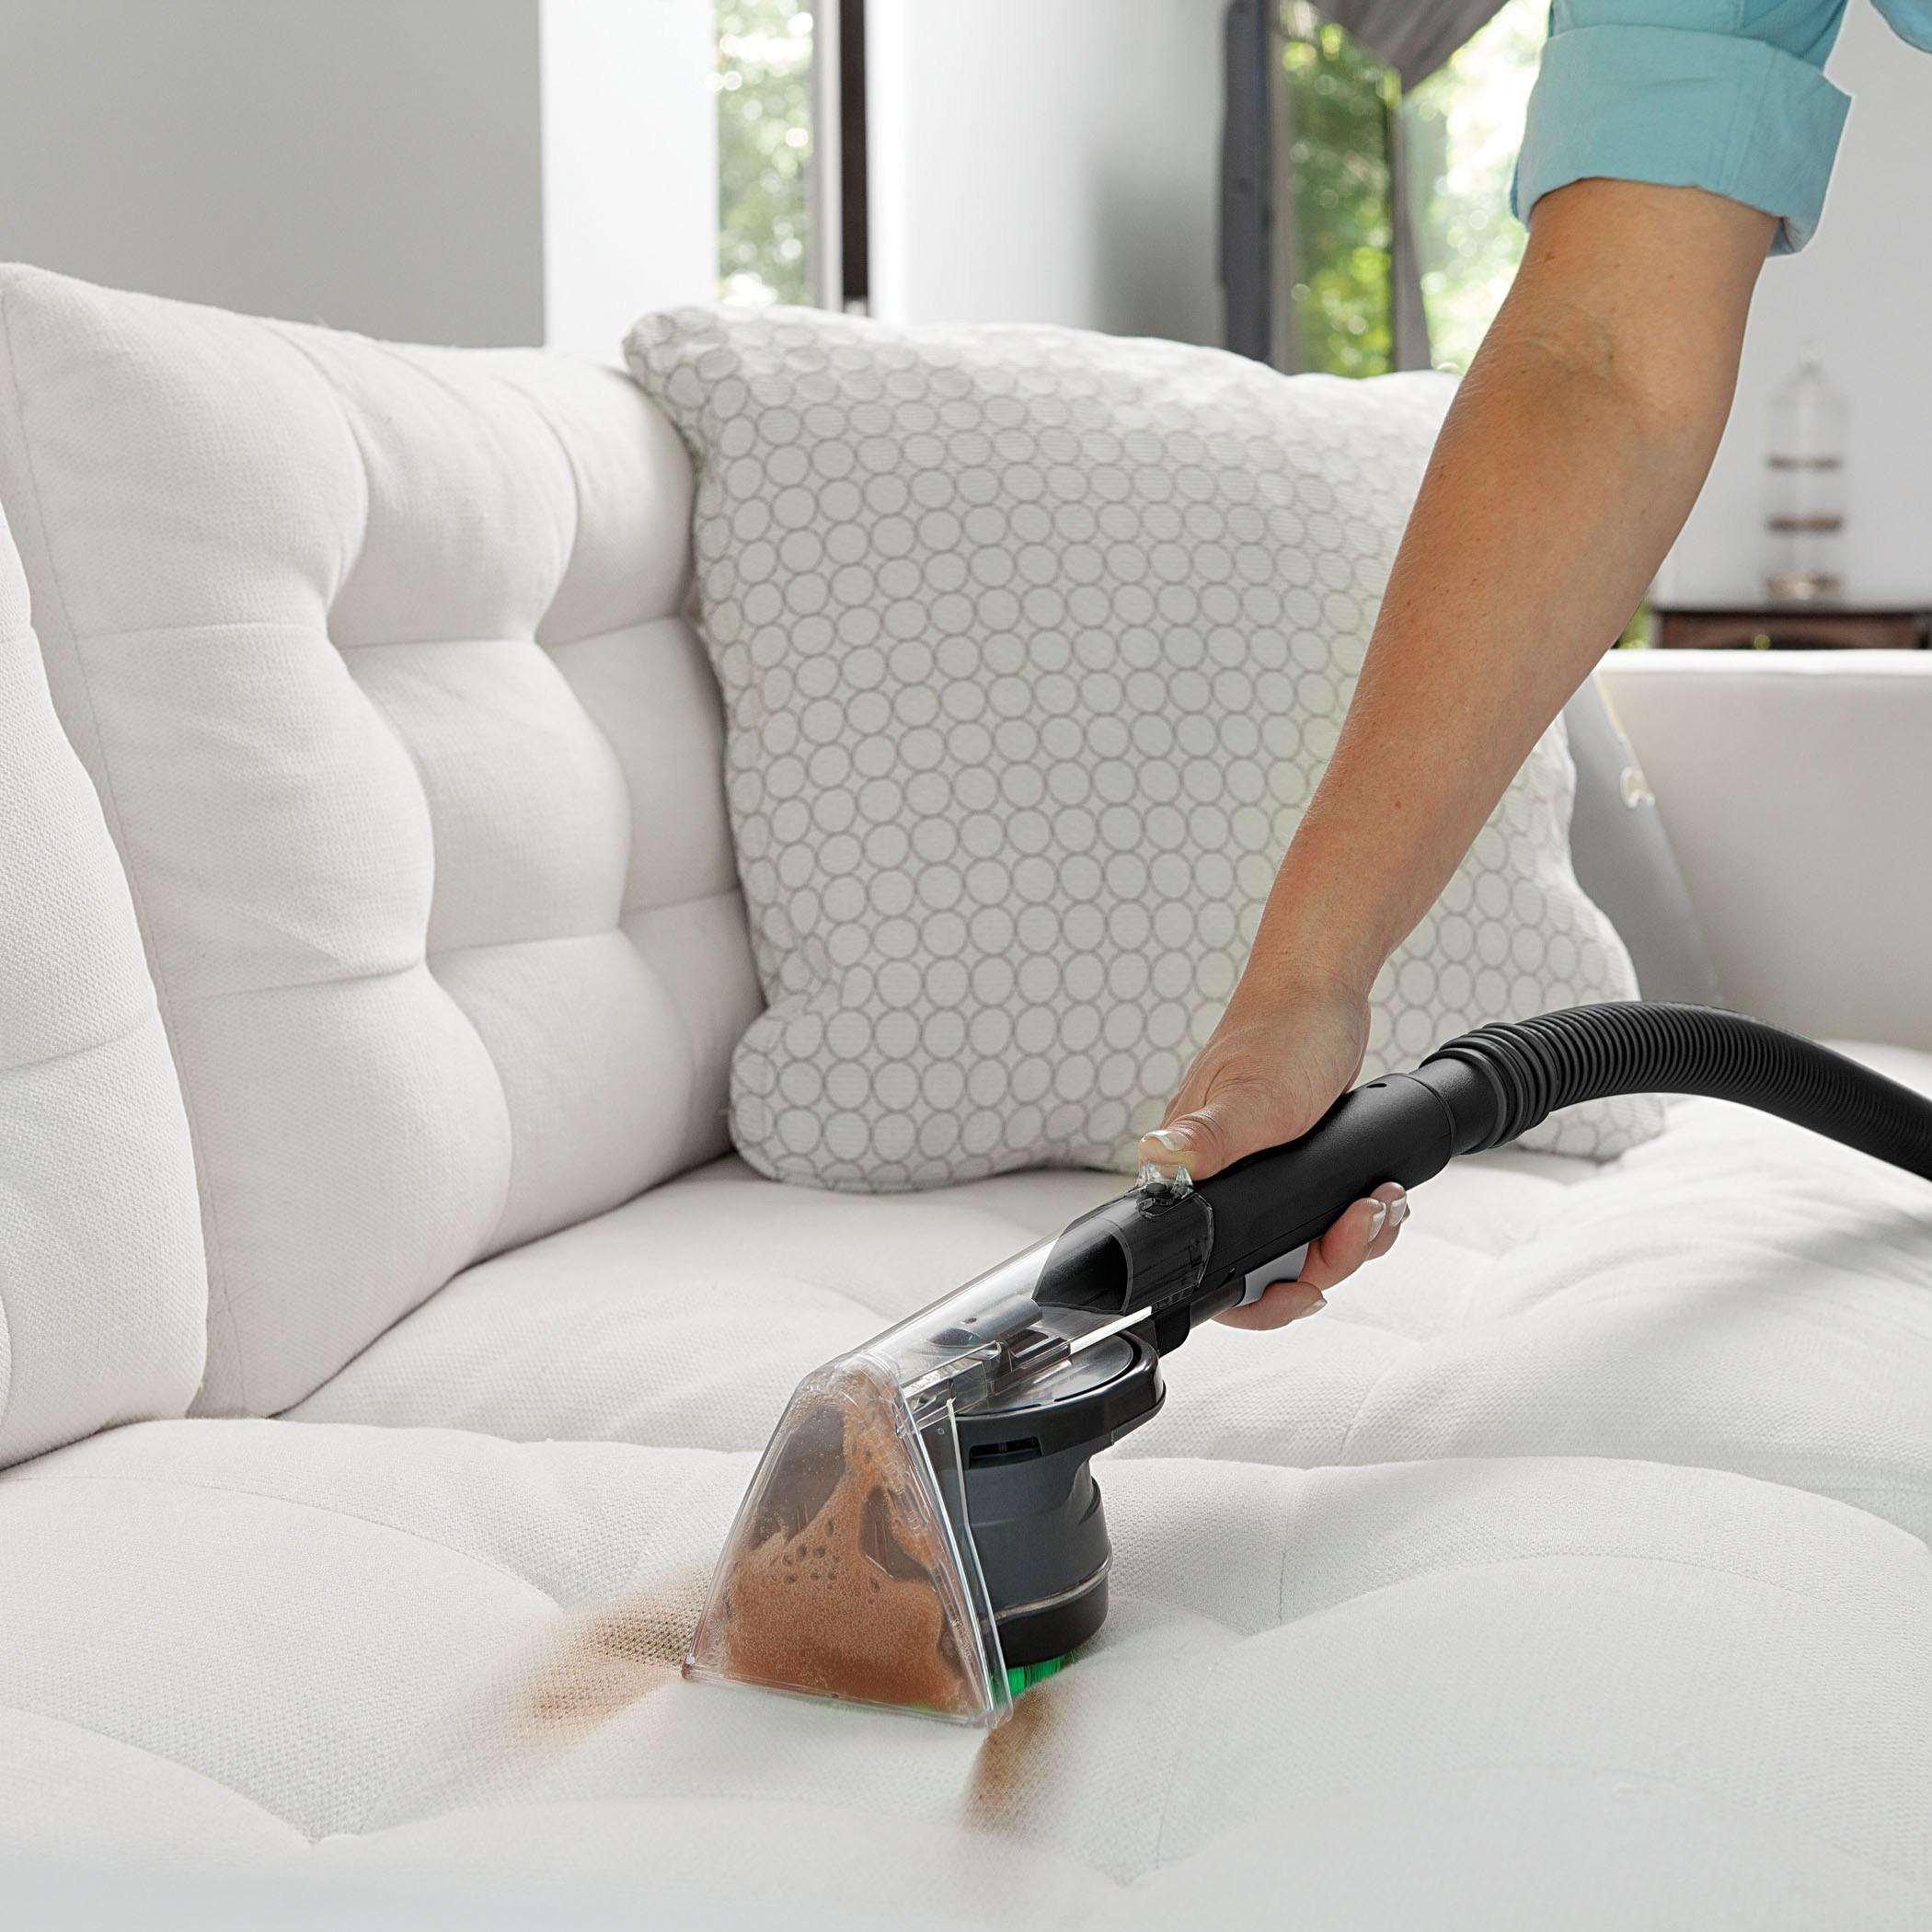 Amazoncom Hoover Power Scrub Deluxe Carpet Washer